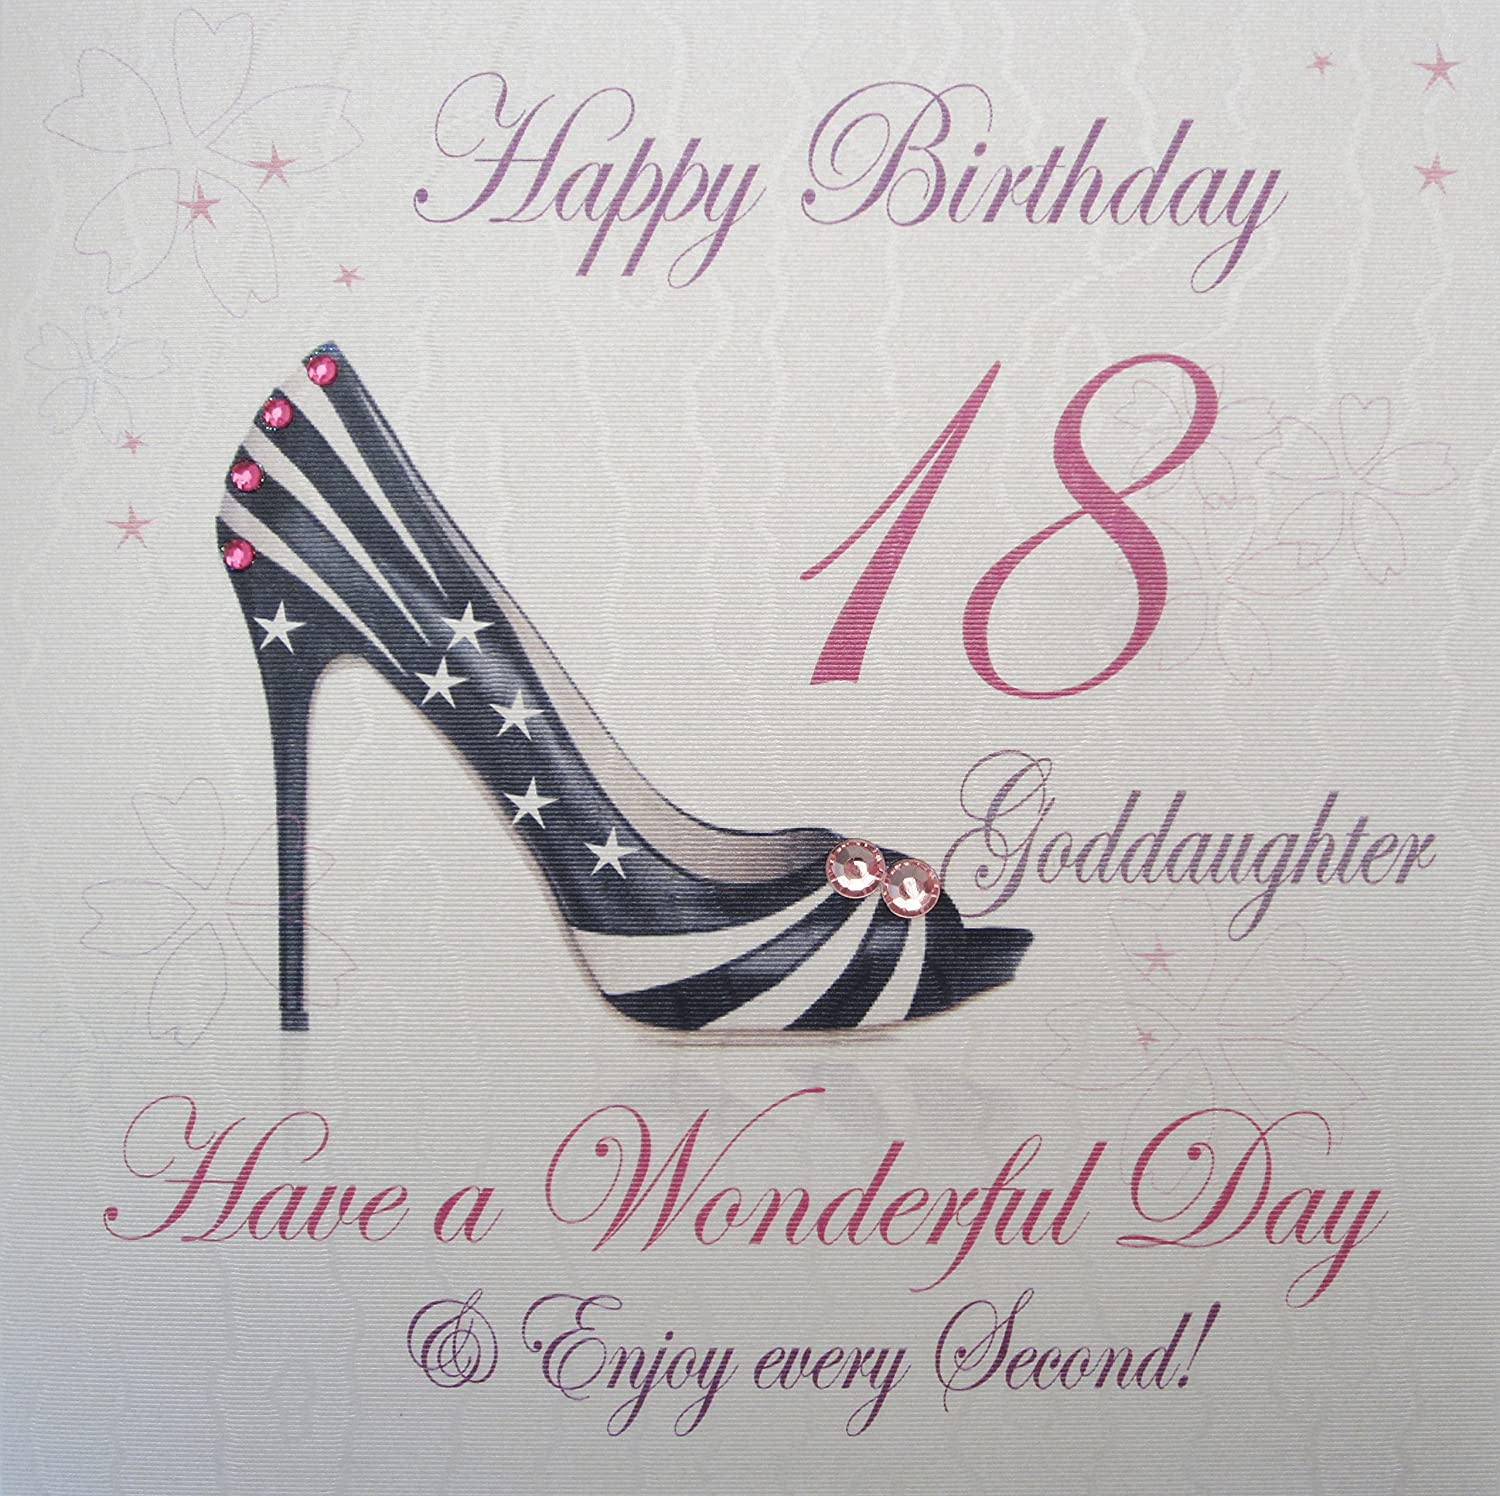 WHITE COTTON CARDS Happy 18 Wonderful Day Handmade Birthday Card Goddaughter 18th